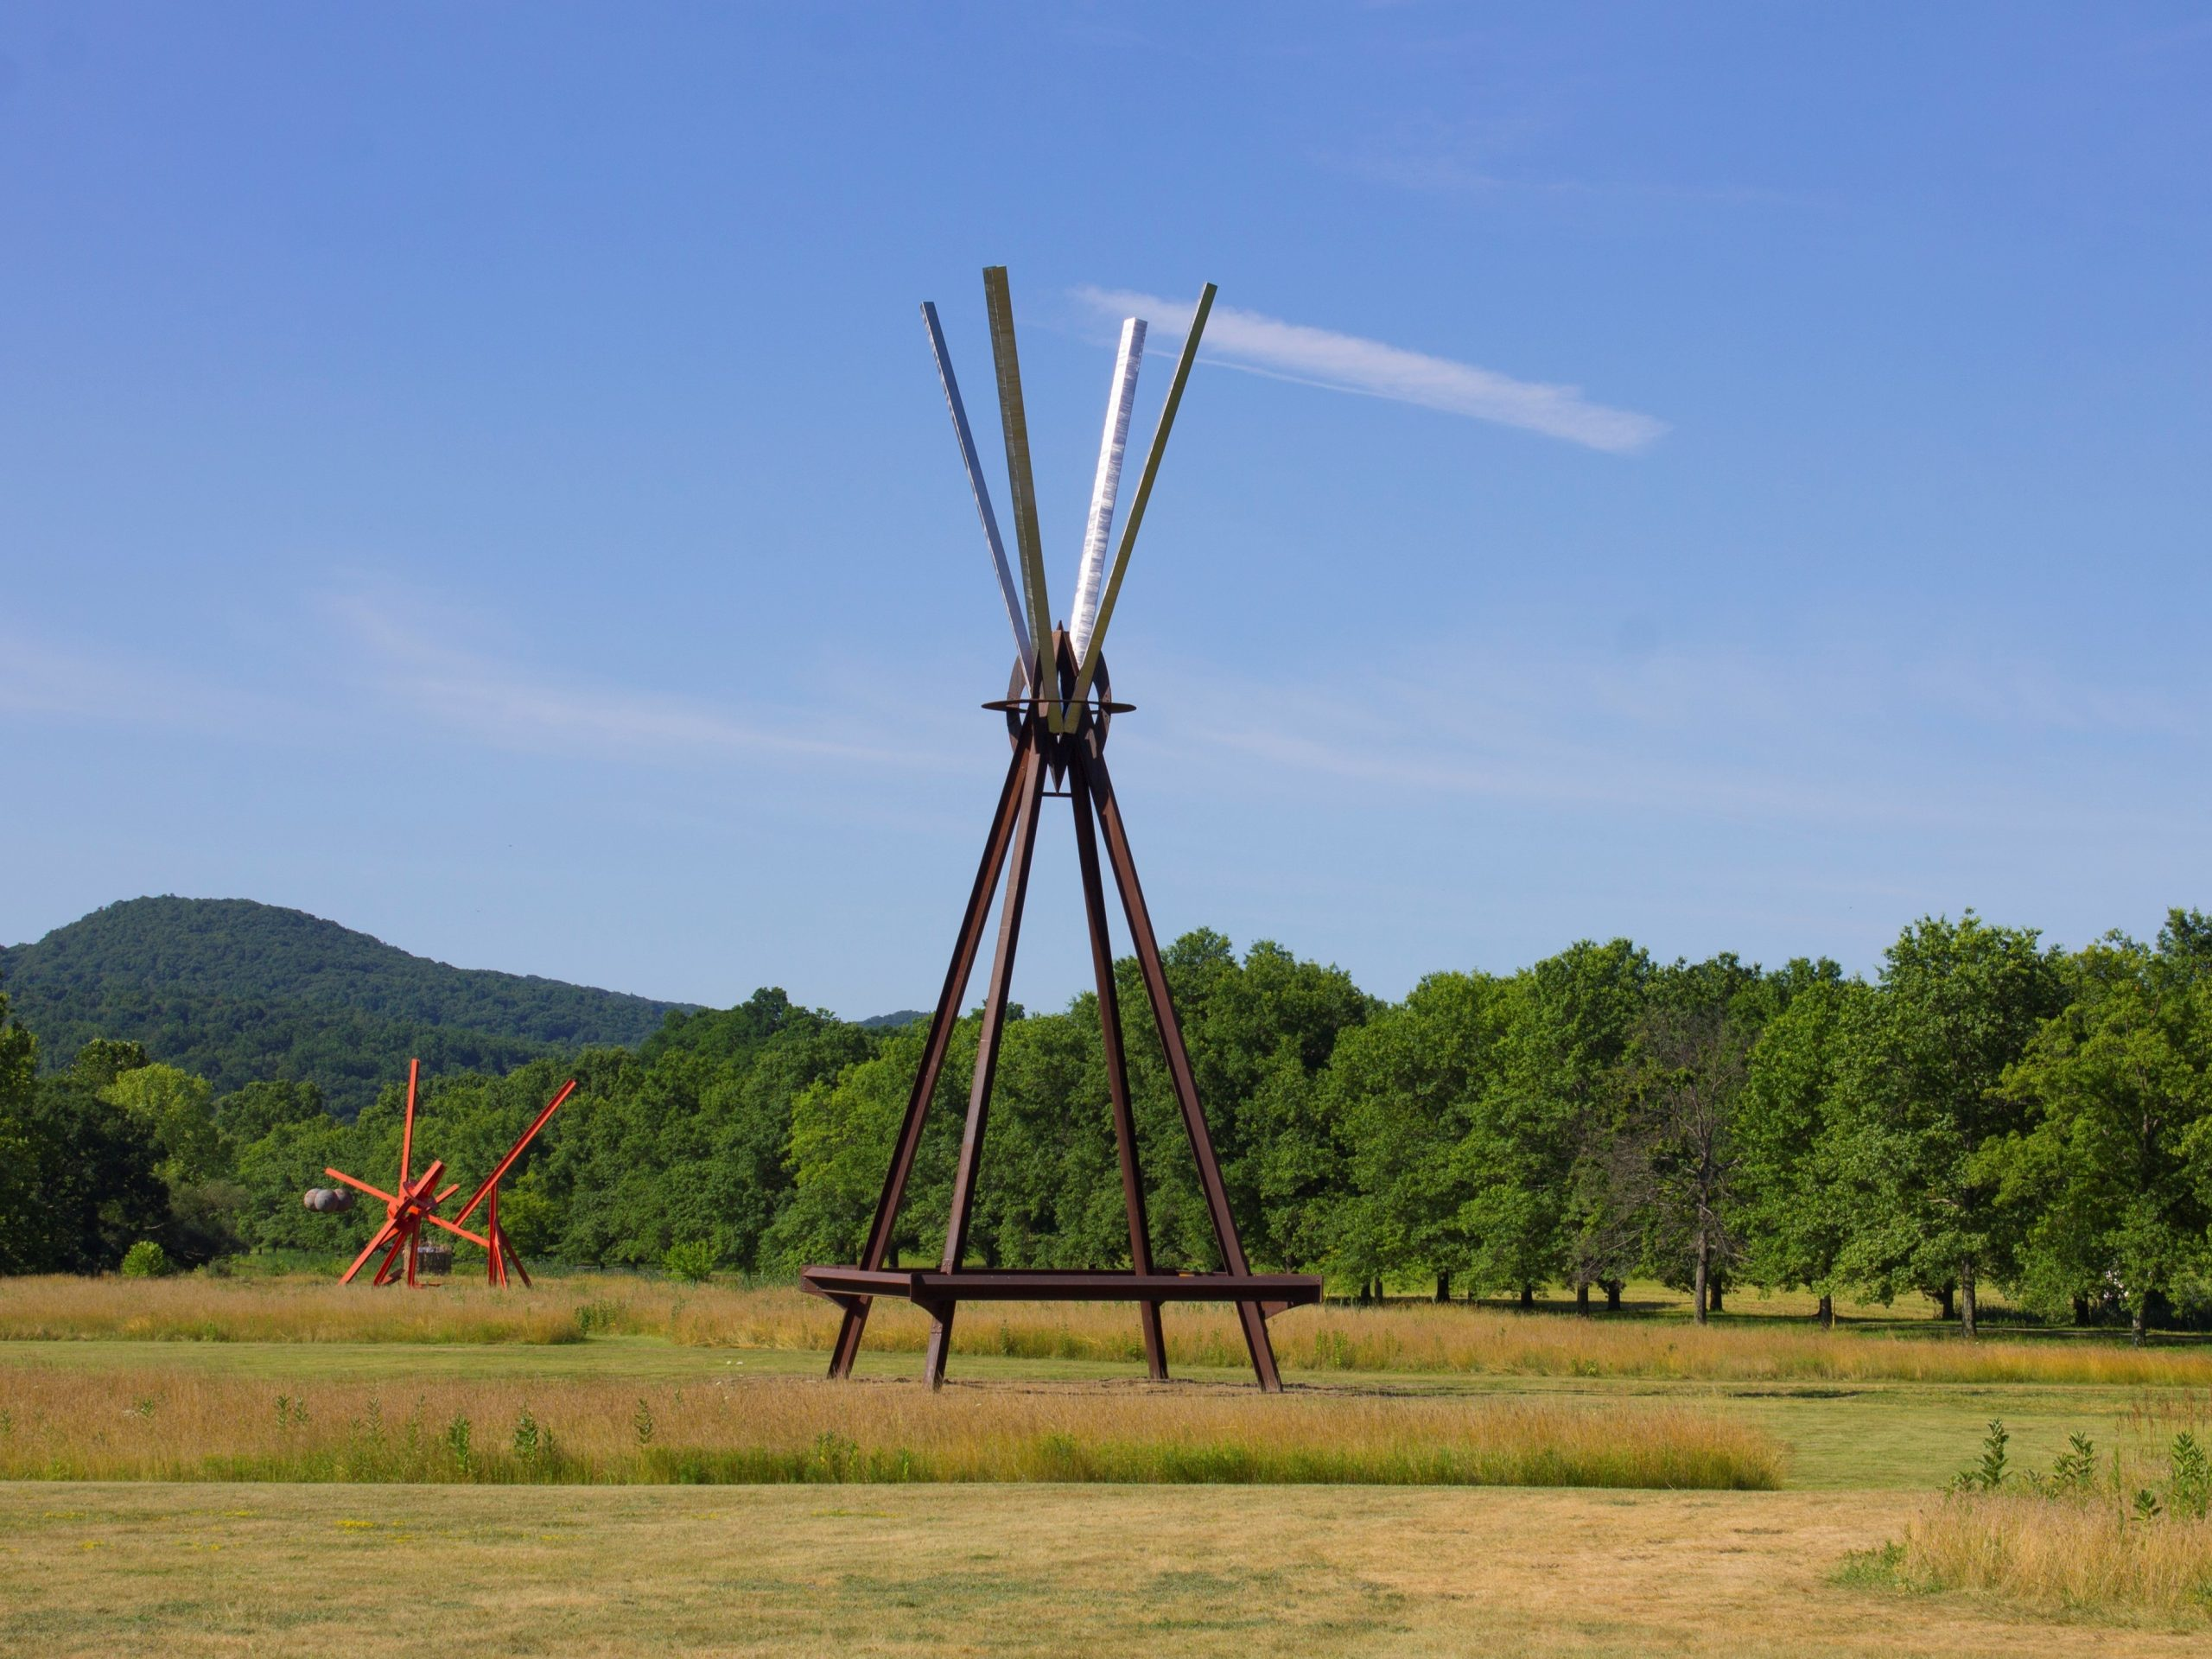 View of the south fields, all works by Mark di Suvero. Left to right: Figolu, 2005–11. Courtesy the artist and Spacetime C.C. E=MC2 , 1996-97. Courtesy the artist and Spacetime C.C. ©Mark di Suvero.